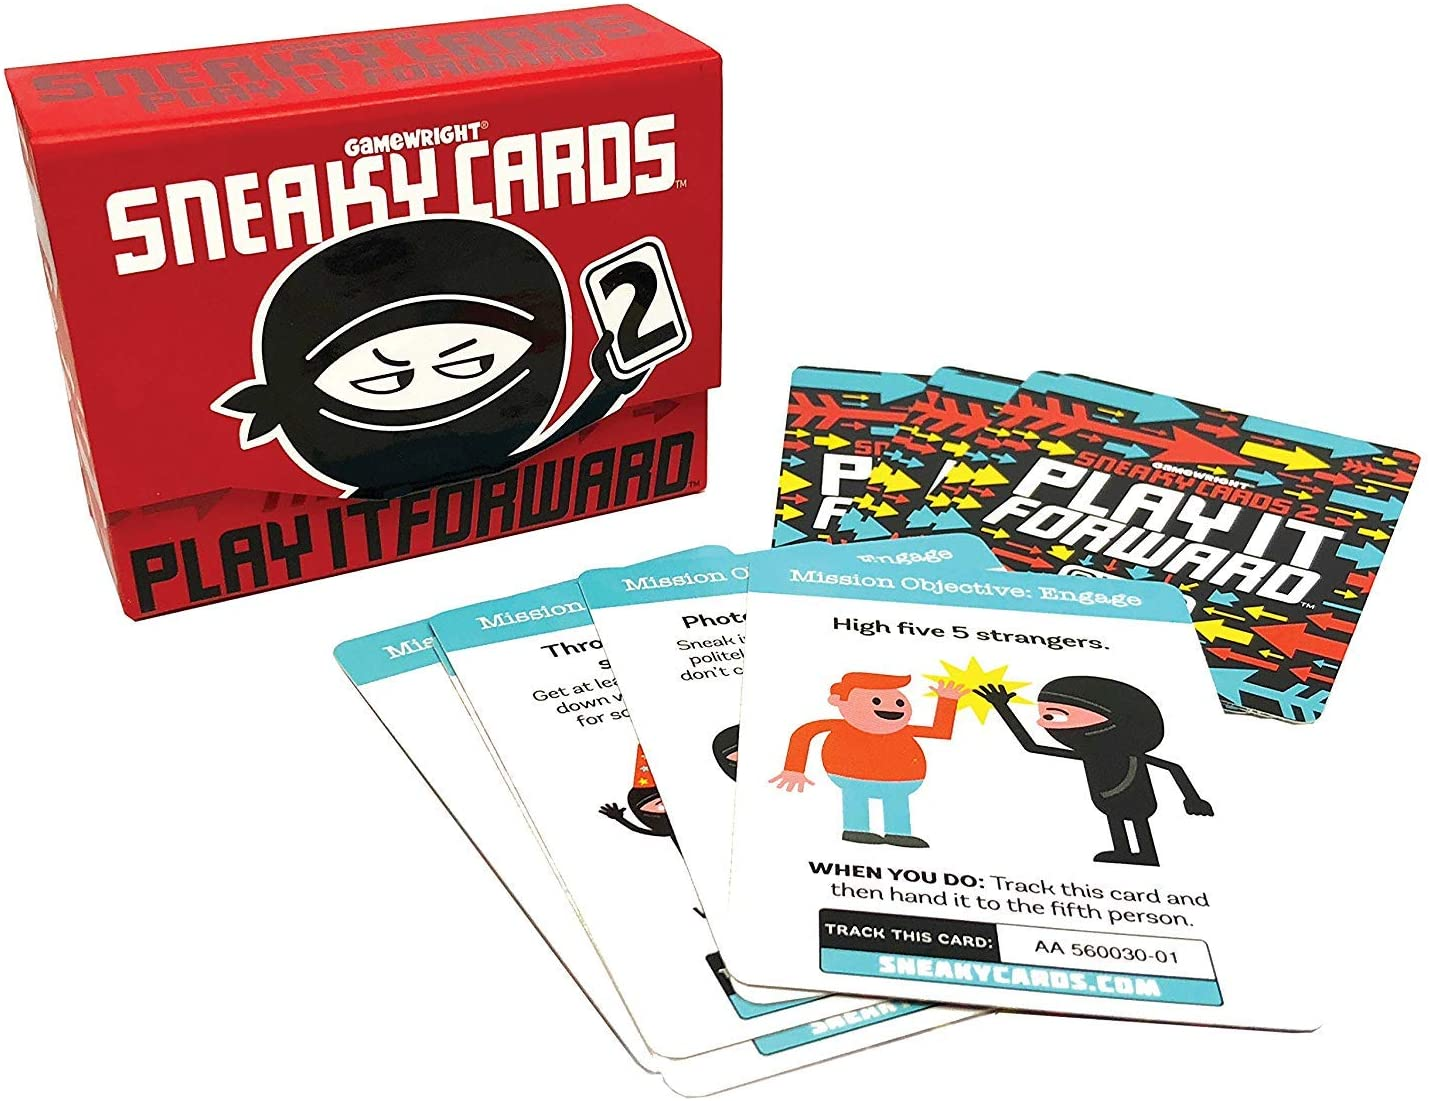 Gamewright  Sneaky Cards 2 - Play It Forward